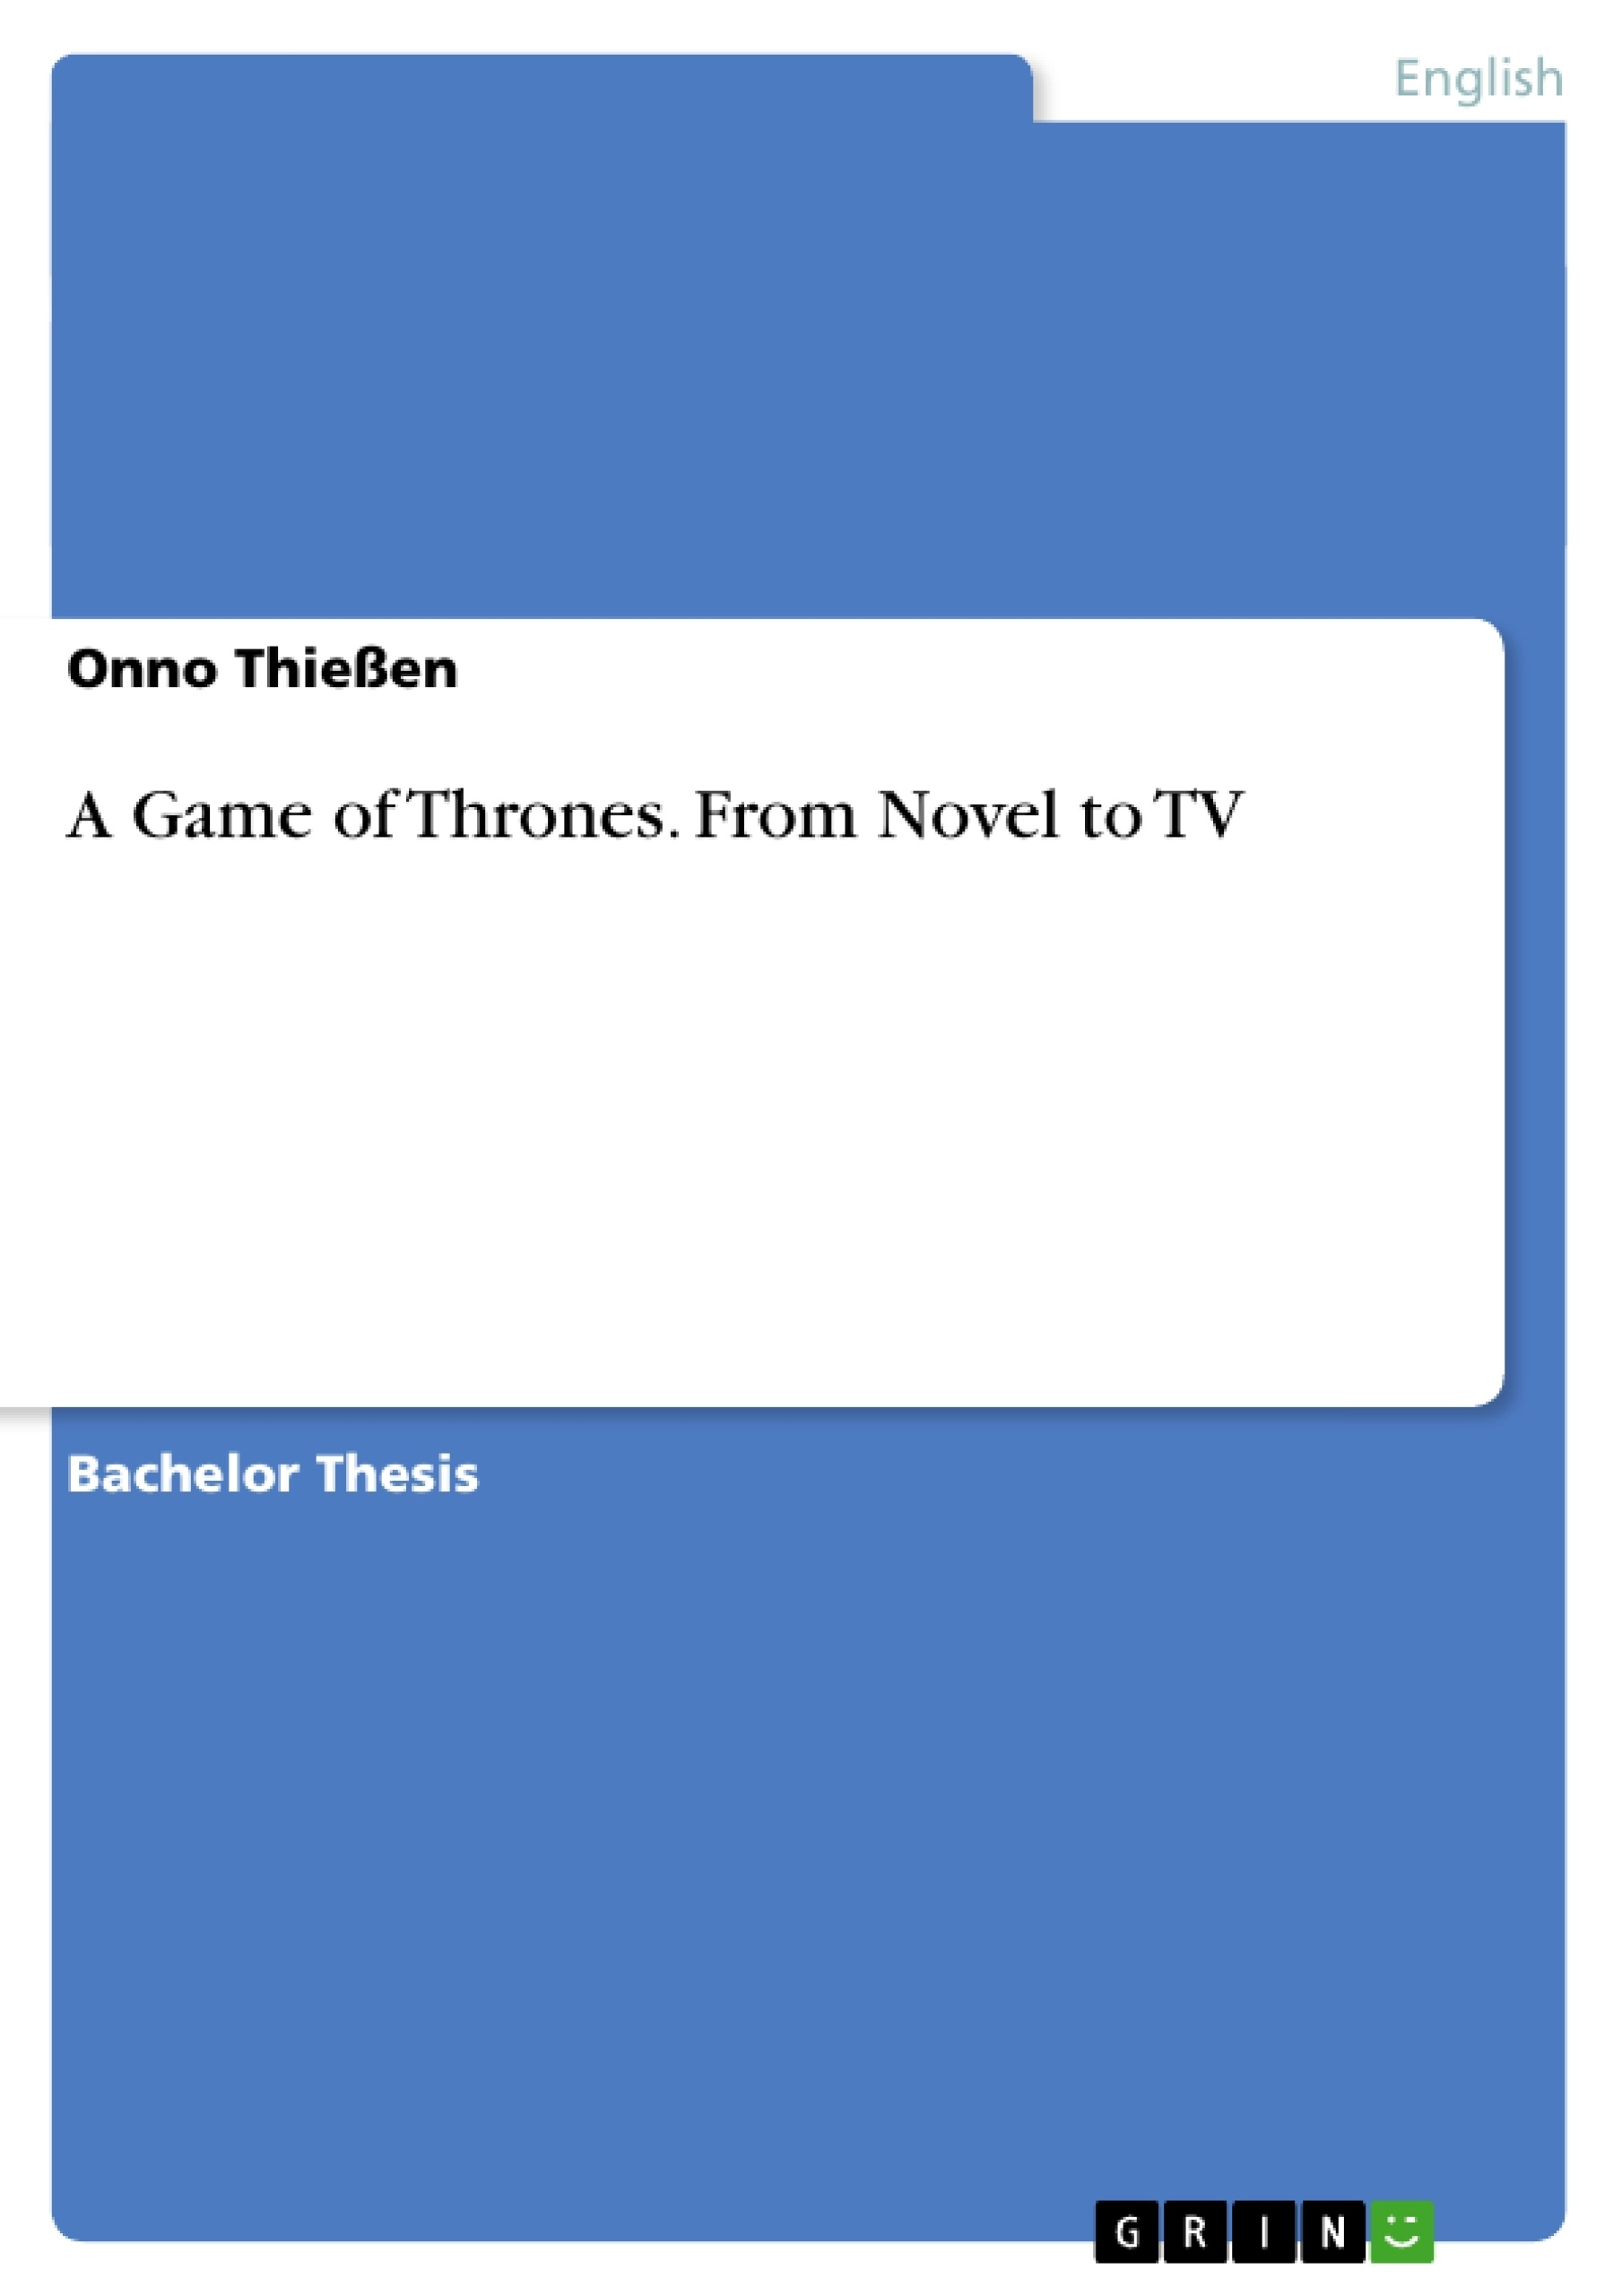 a game of thrones from novel to tv hausarbeiten publizieren